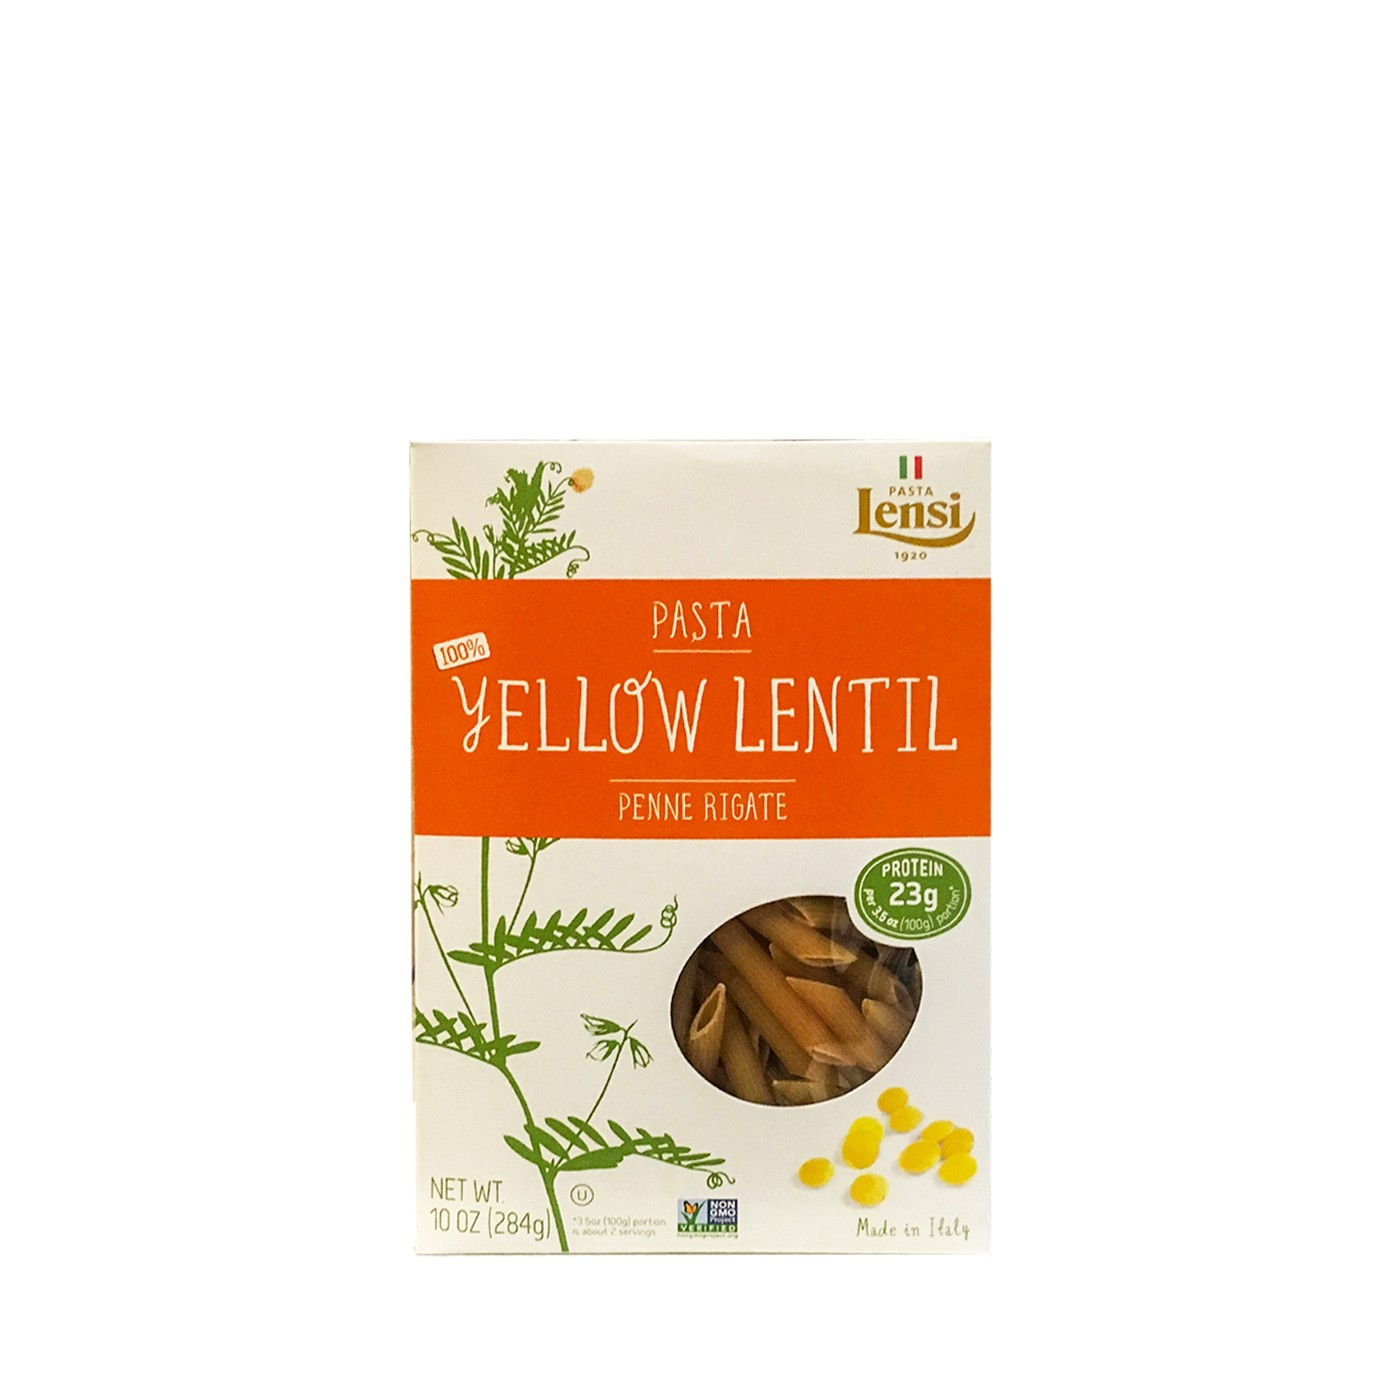 Yellow-Lentil Penne Rigate 10 oz